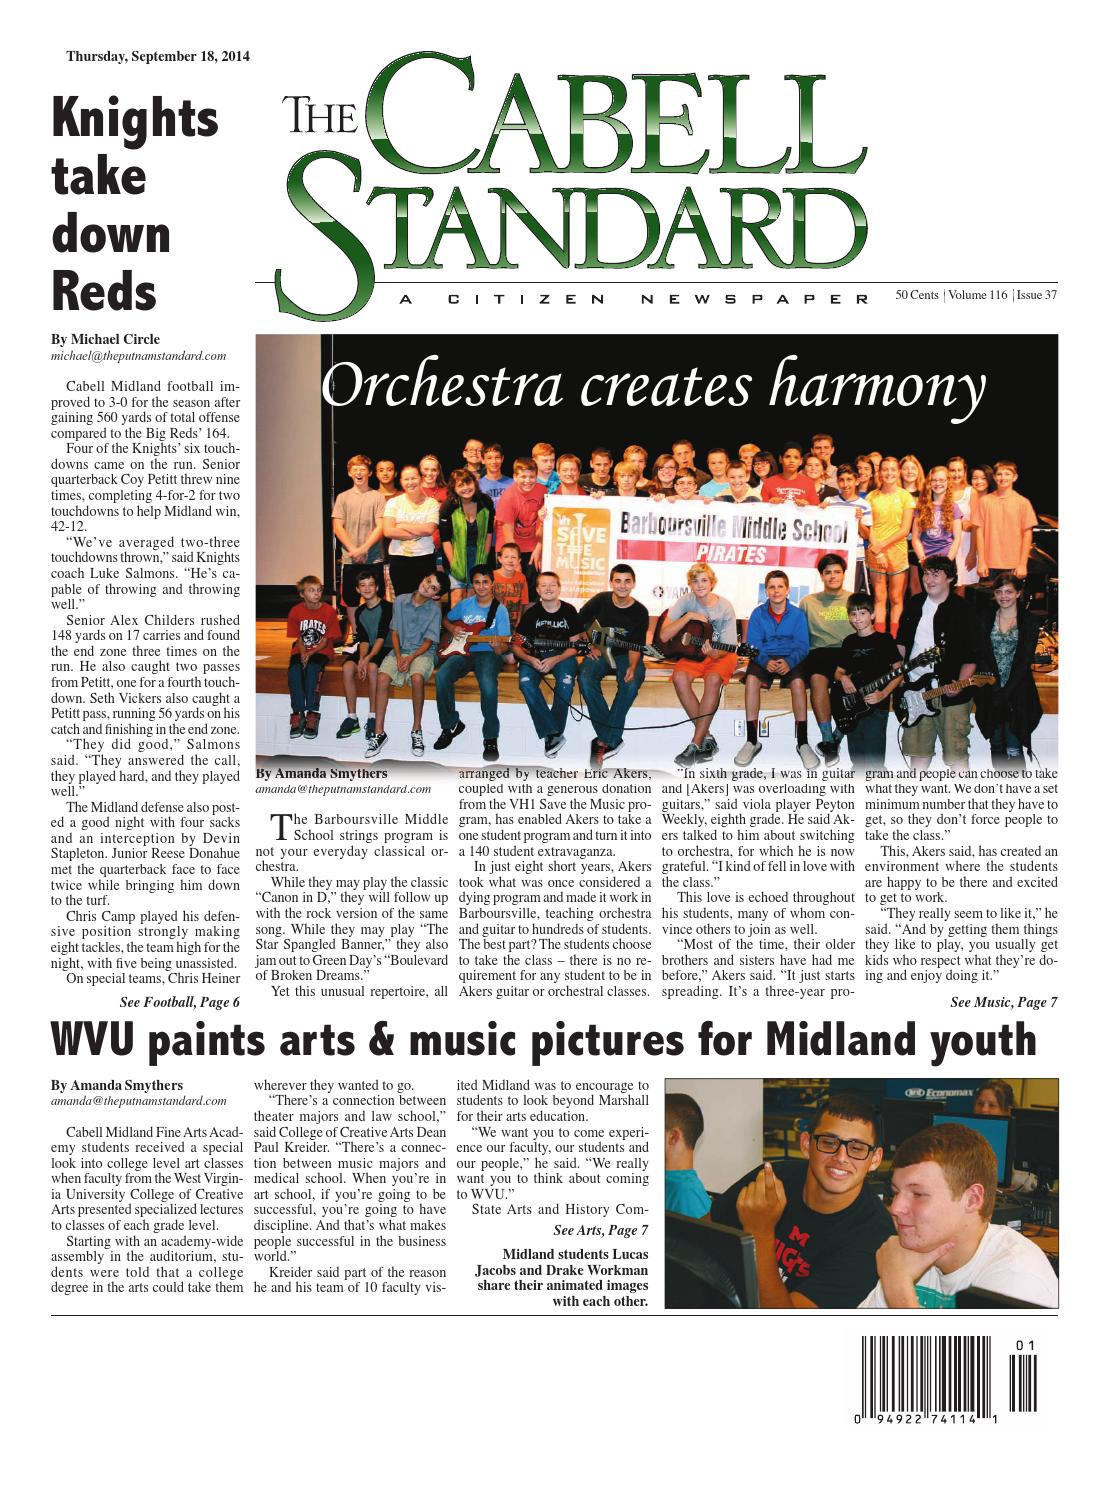 The Cabell Standard, Sept  18, 2014 by PC Newspapers - issuu